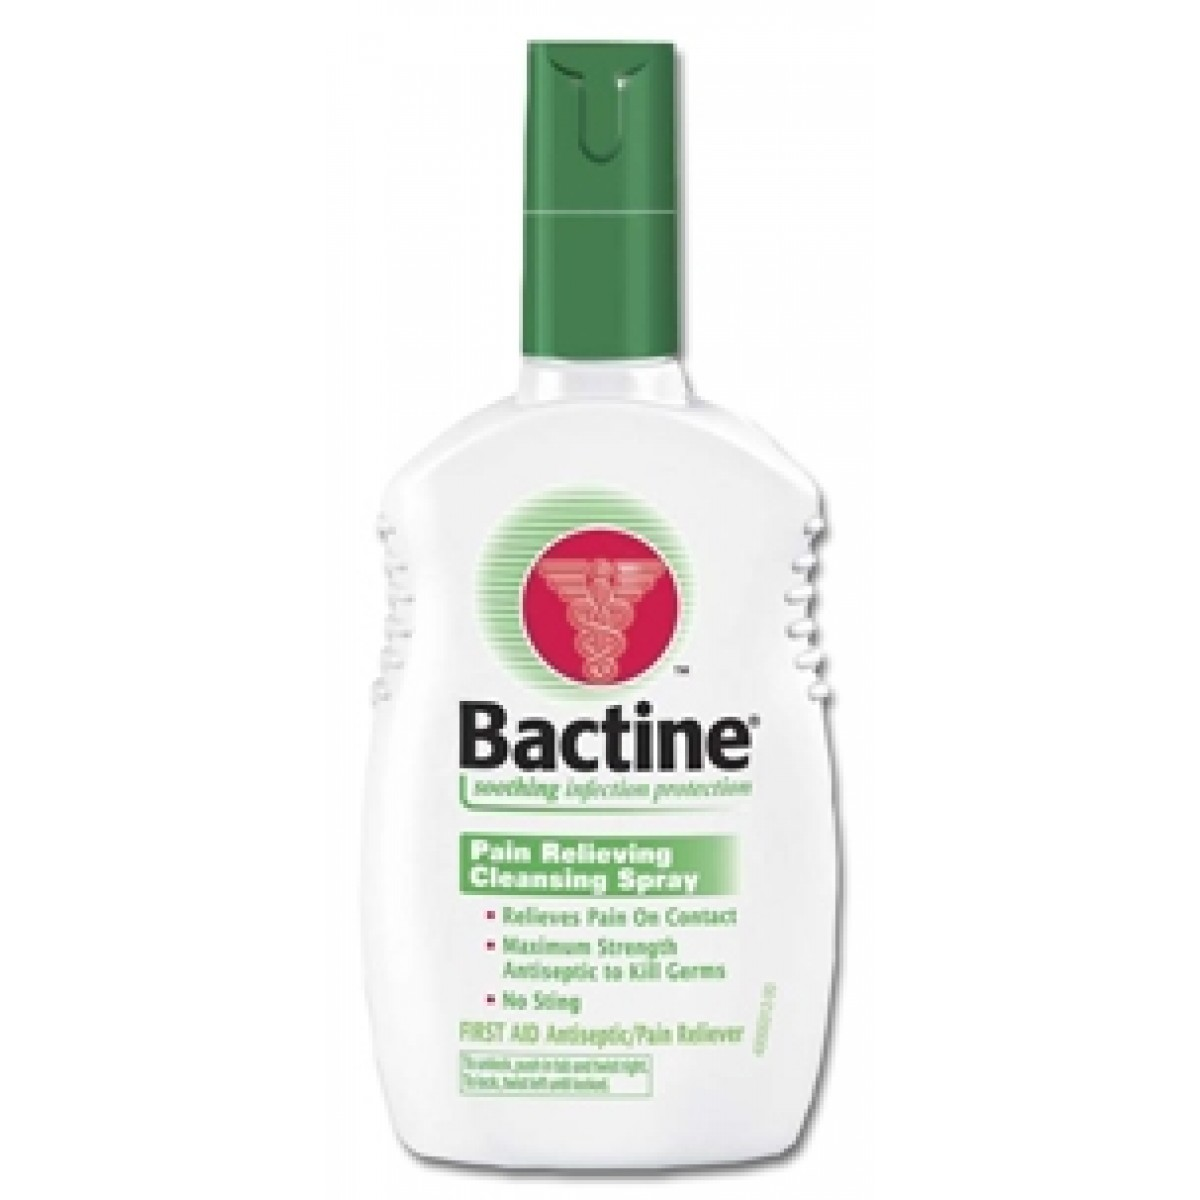 Bactine First Aid Antiseptic 2430429